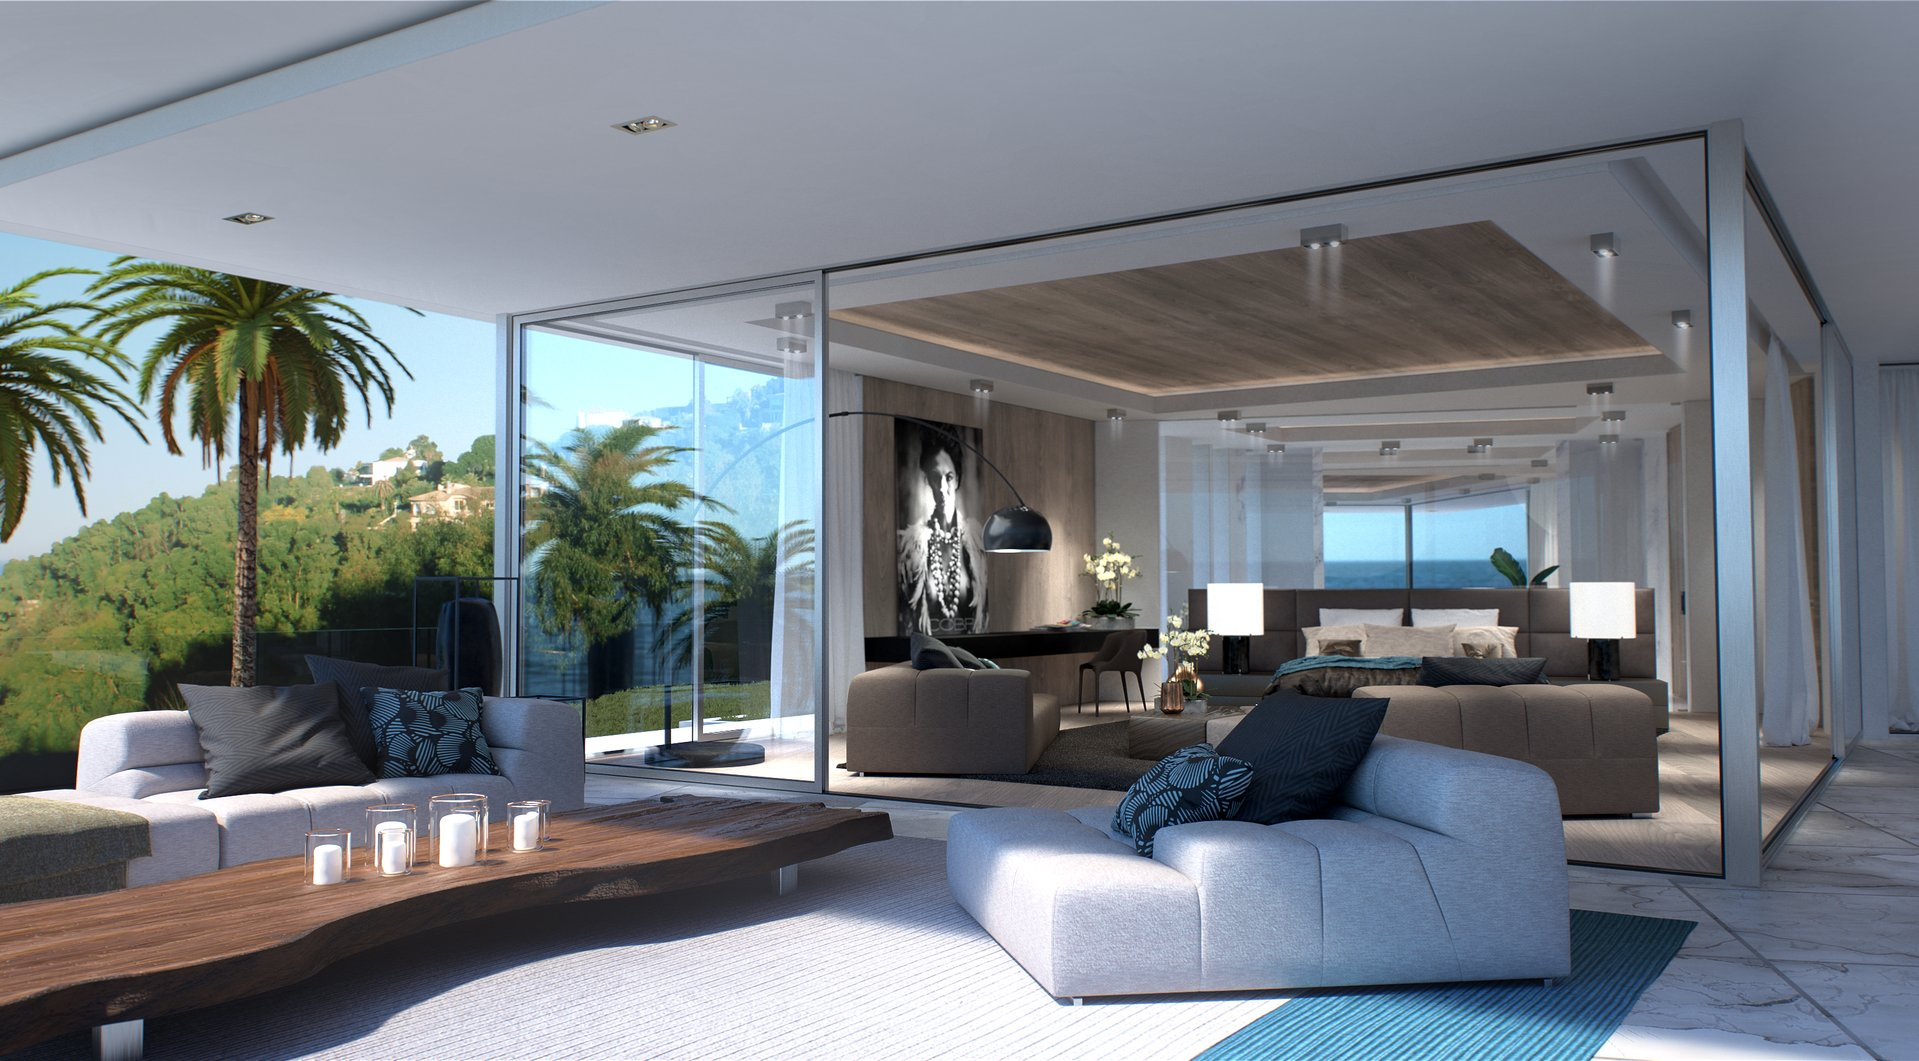 SUPER-CANNES - ULTRA CONTEMPORARY STYLE VILLA